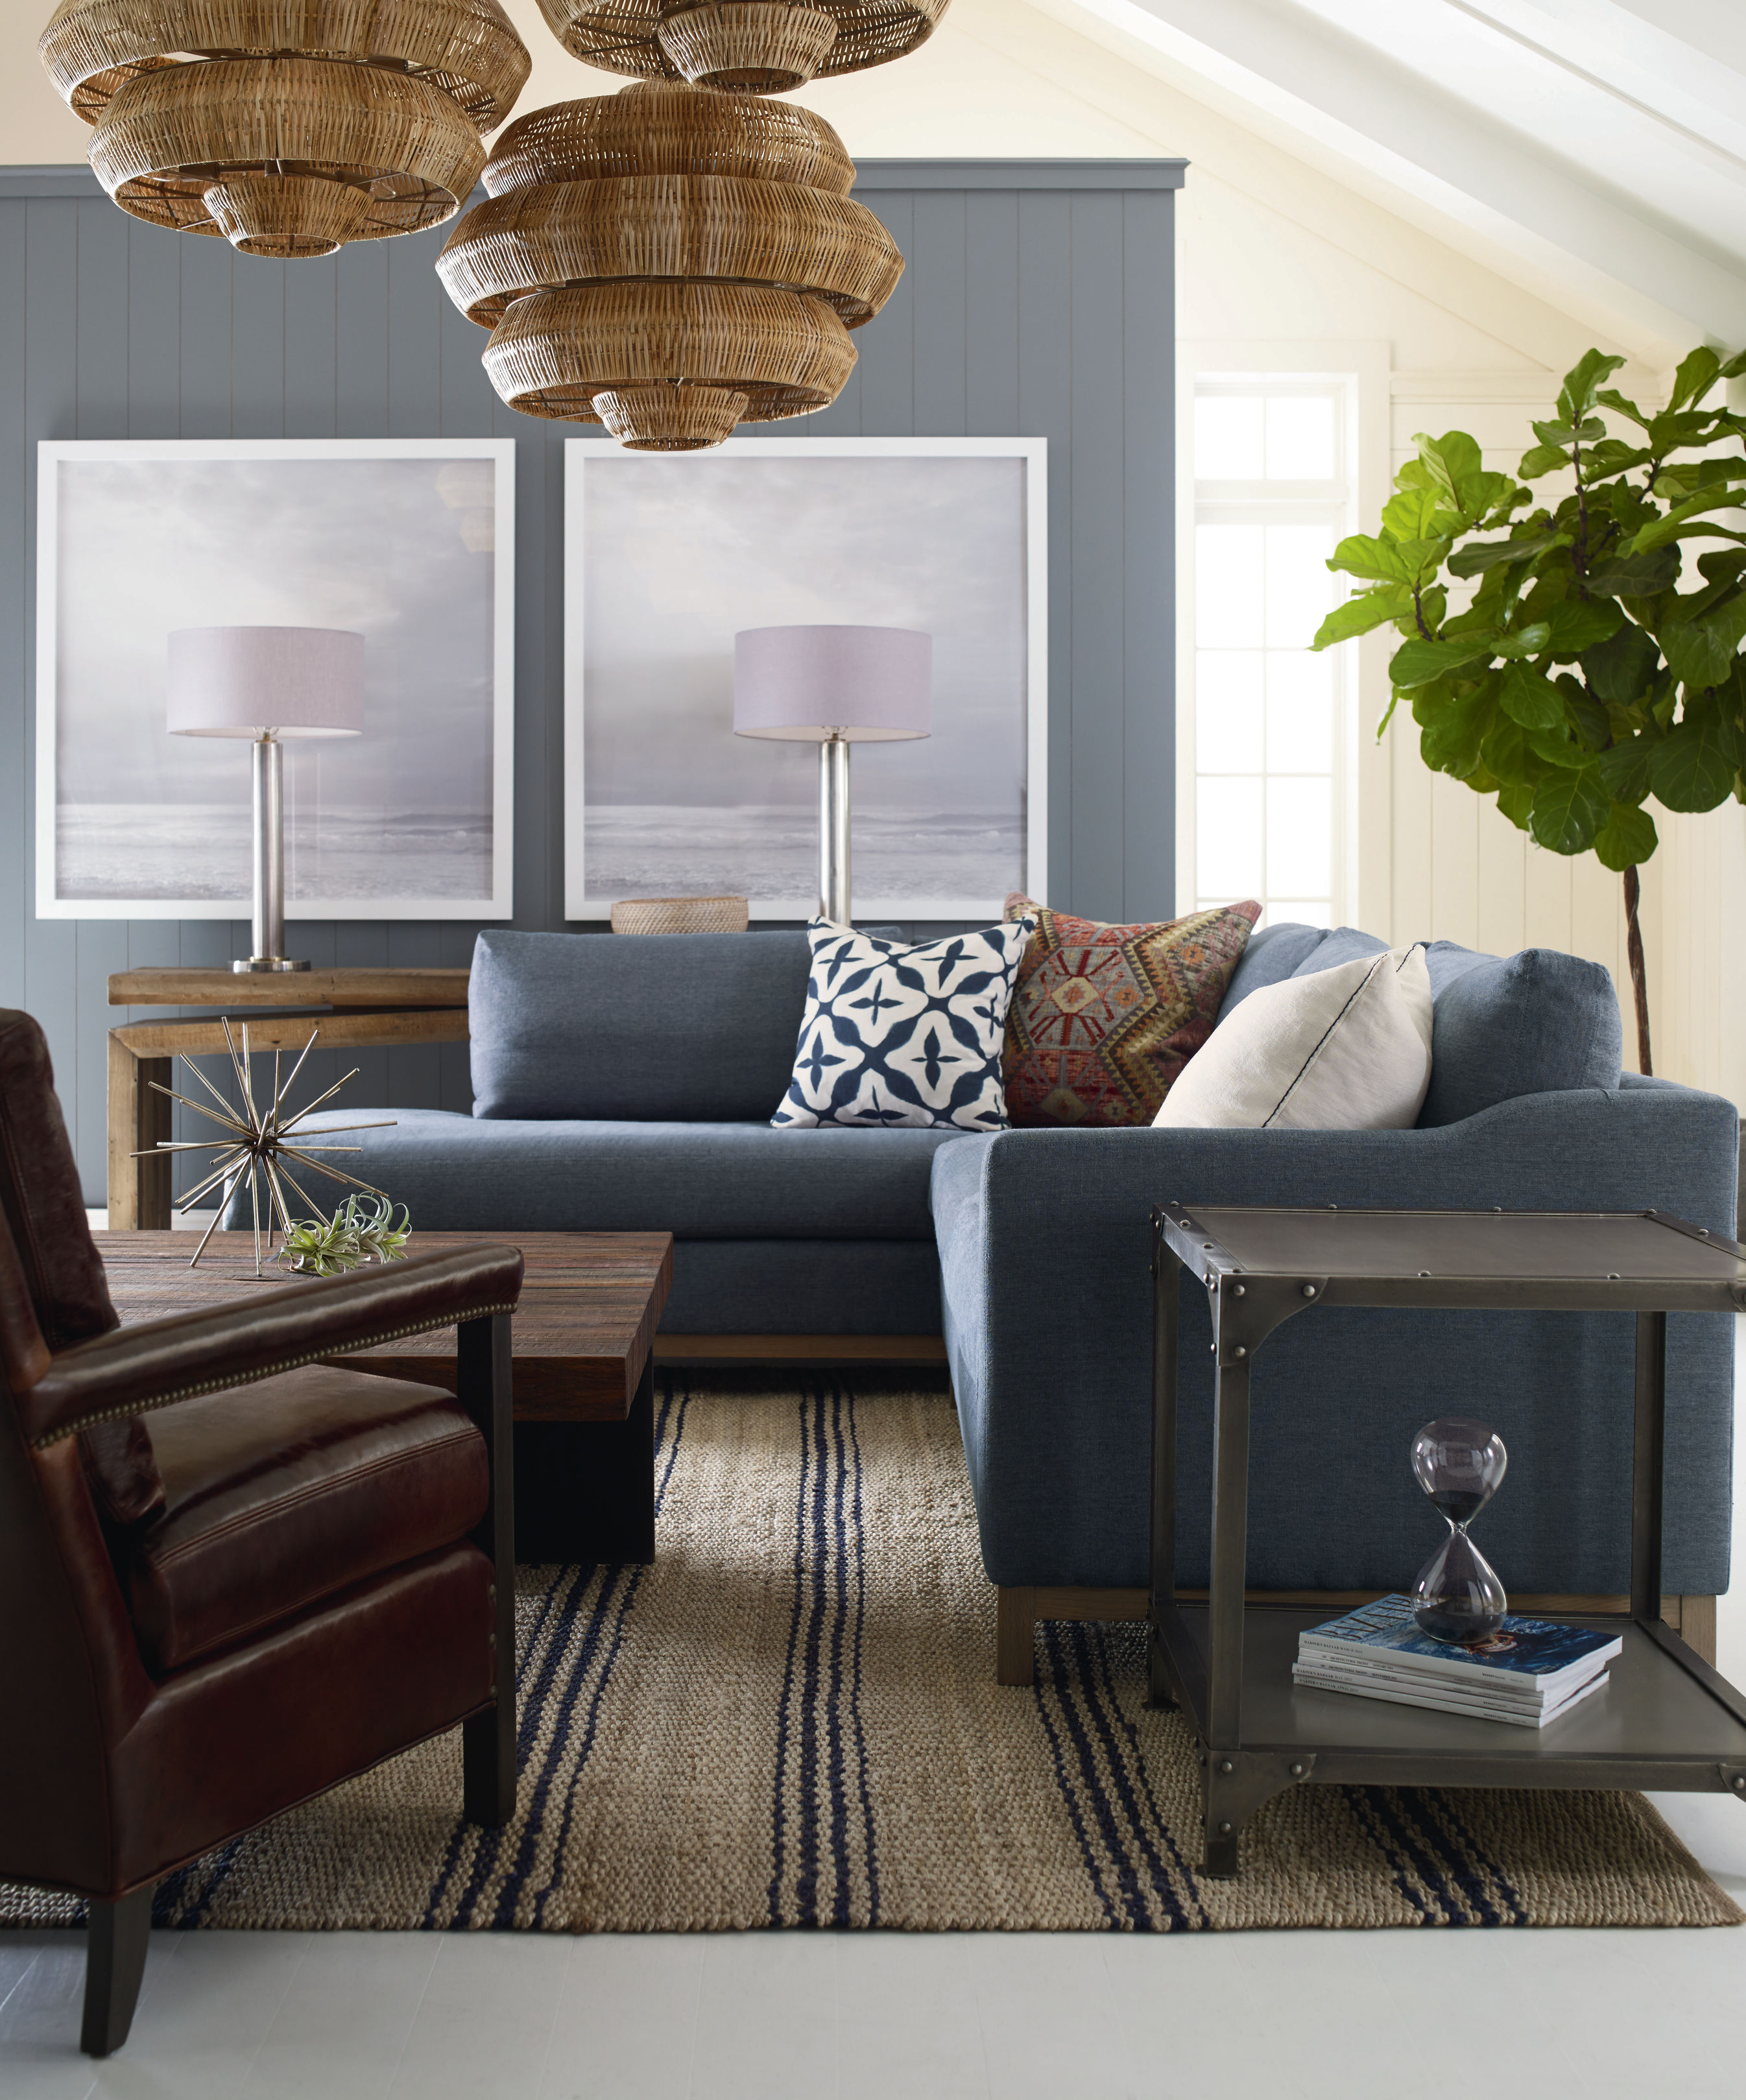 Cr Laine Furniture With Sierra Foam Ii Oversized Sofa Chairs (View 15 of 25)